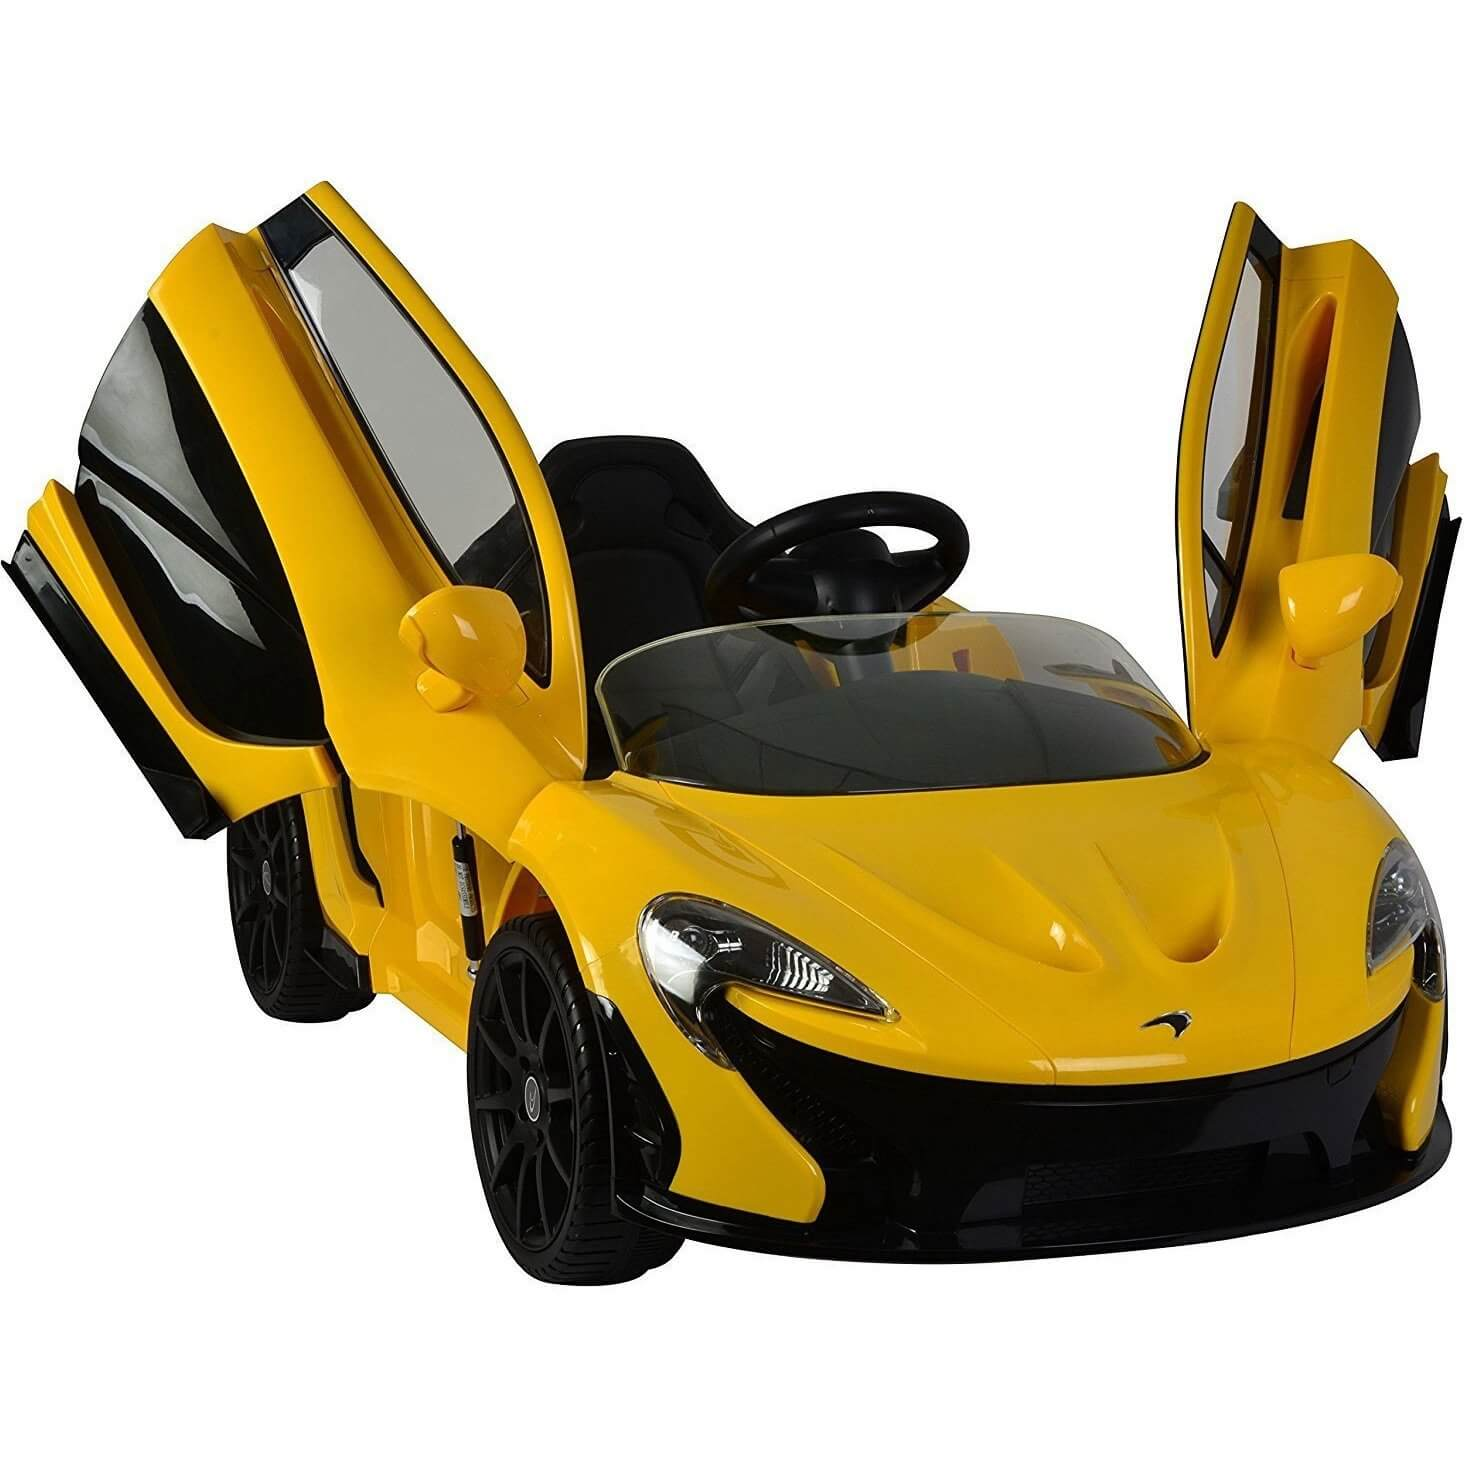 Raf 12 v Licensed Mclaren luxurious Ride on sports car  for kids - rafplay